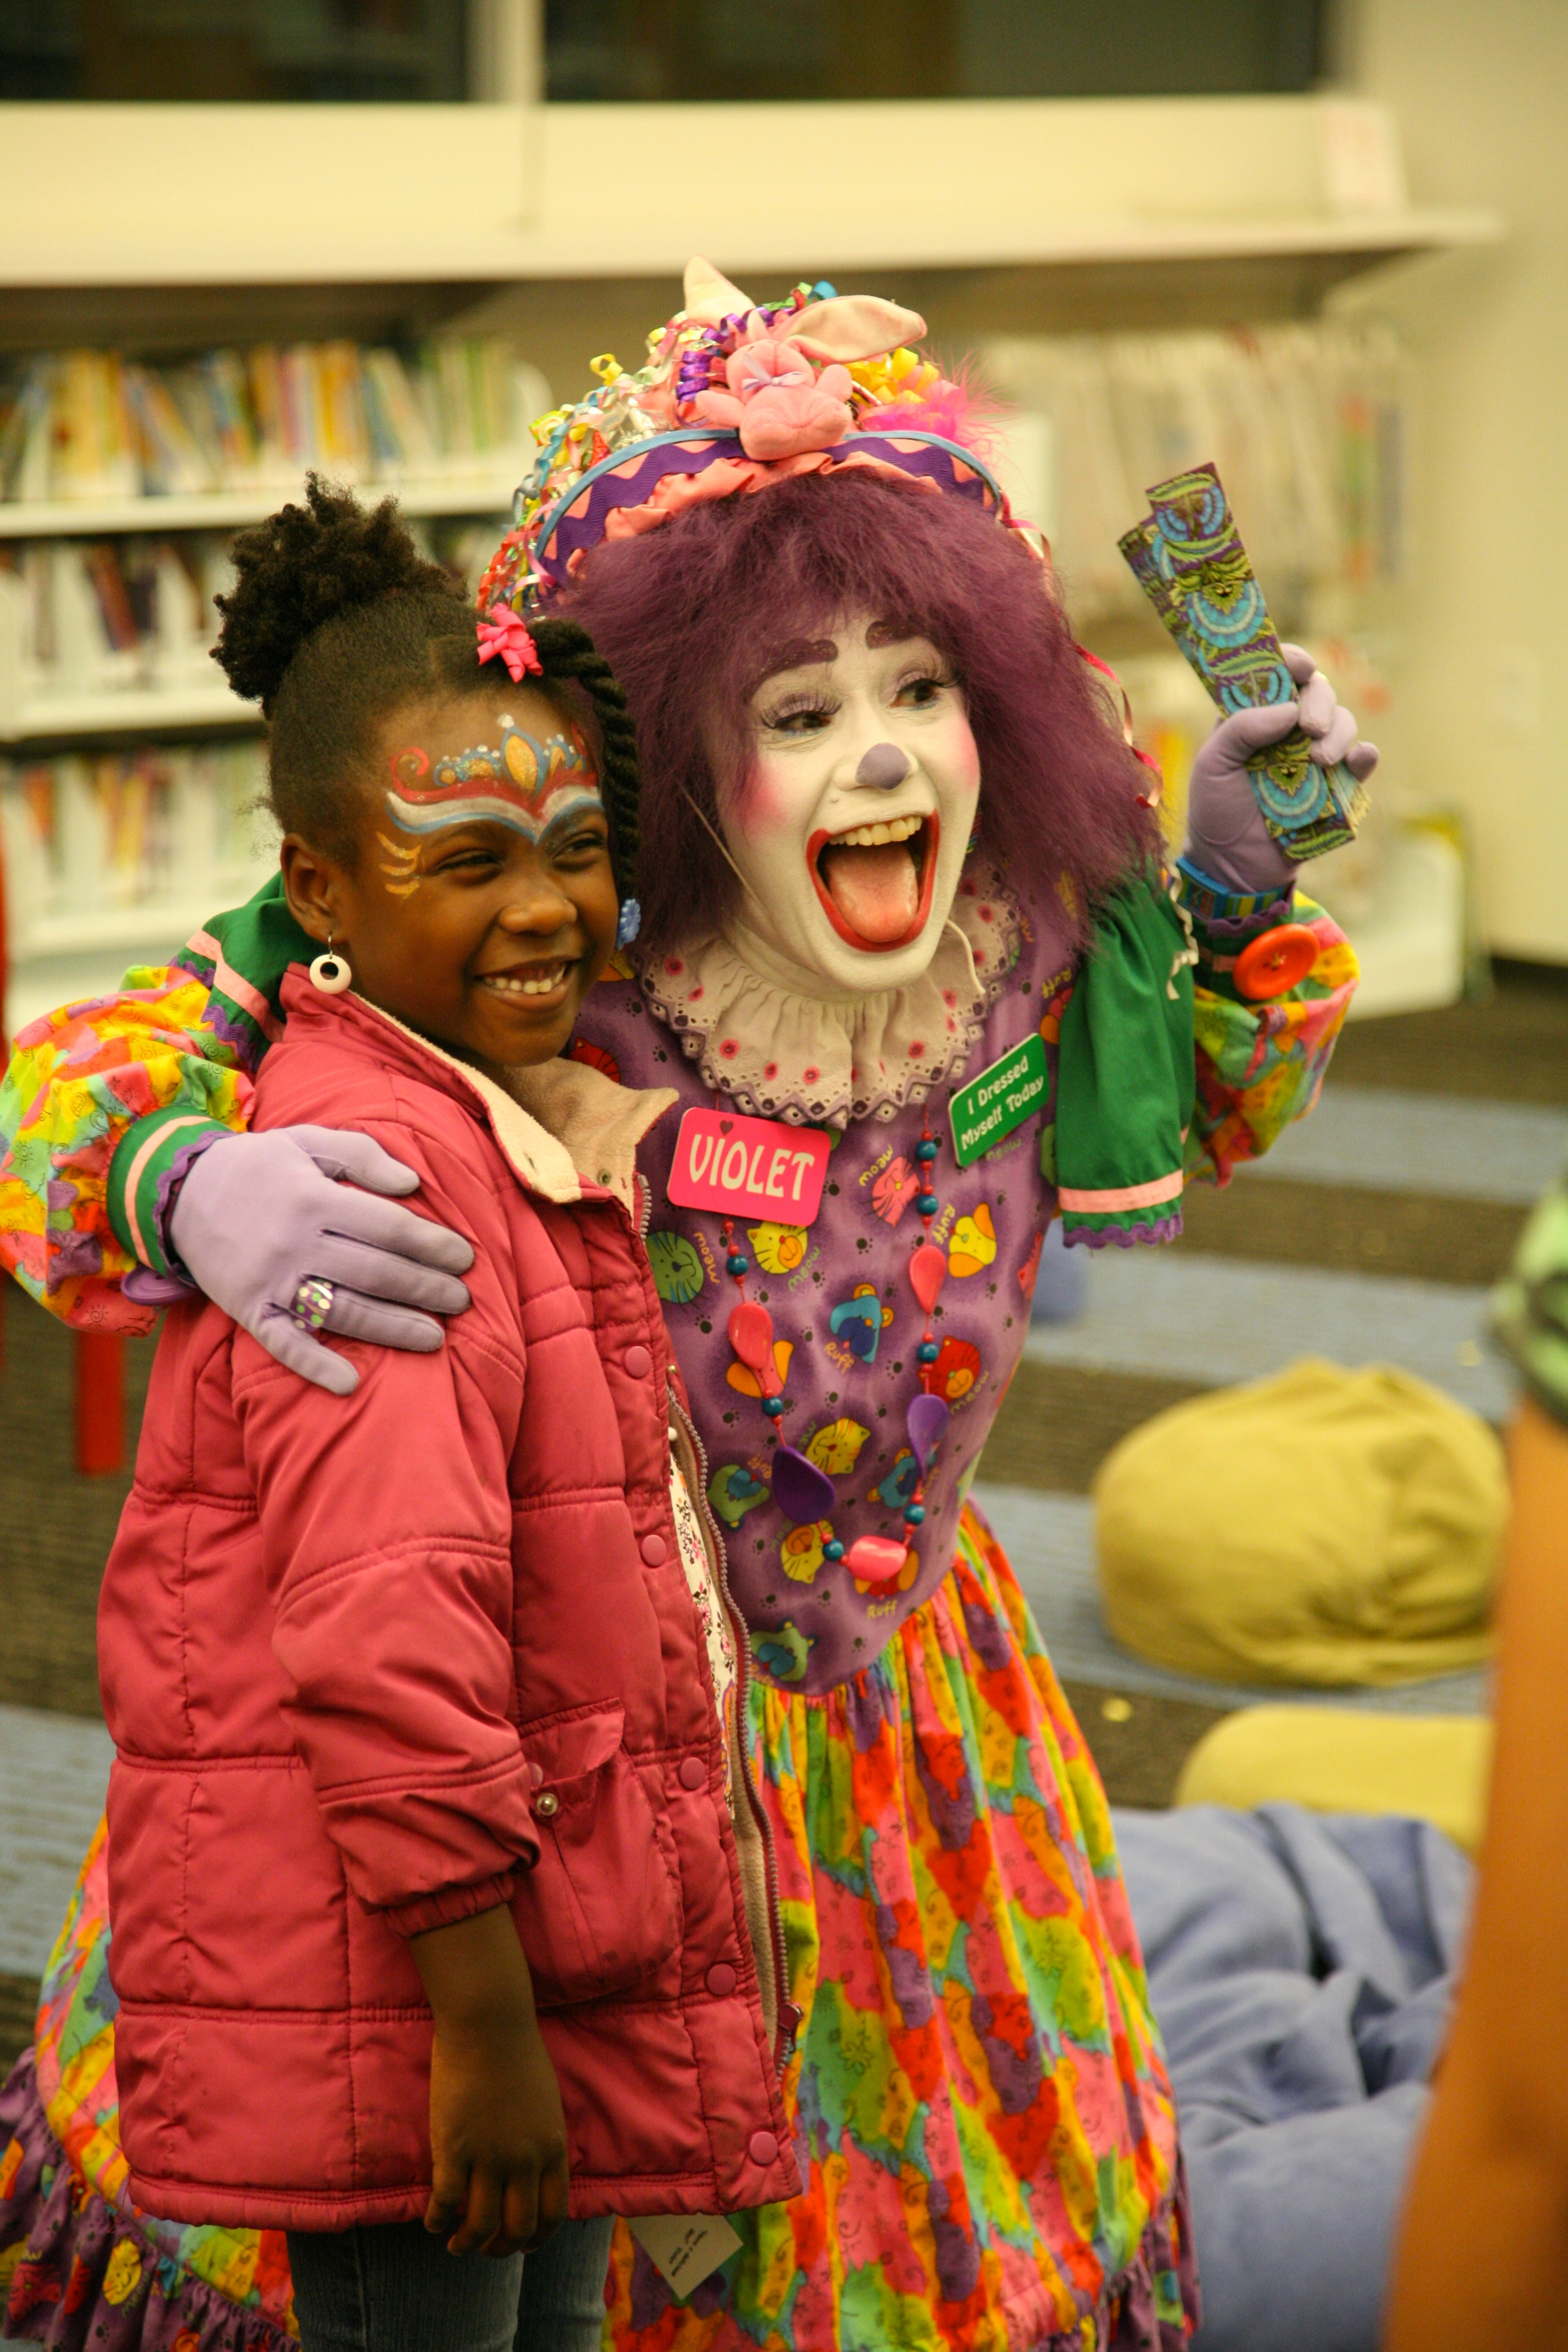 clowning around at the library author lucke charl charlie